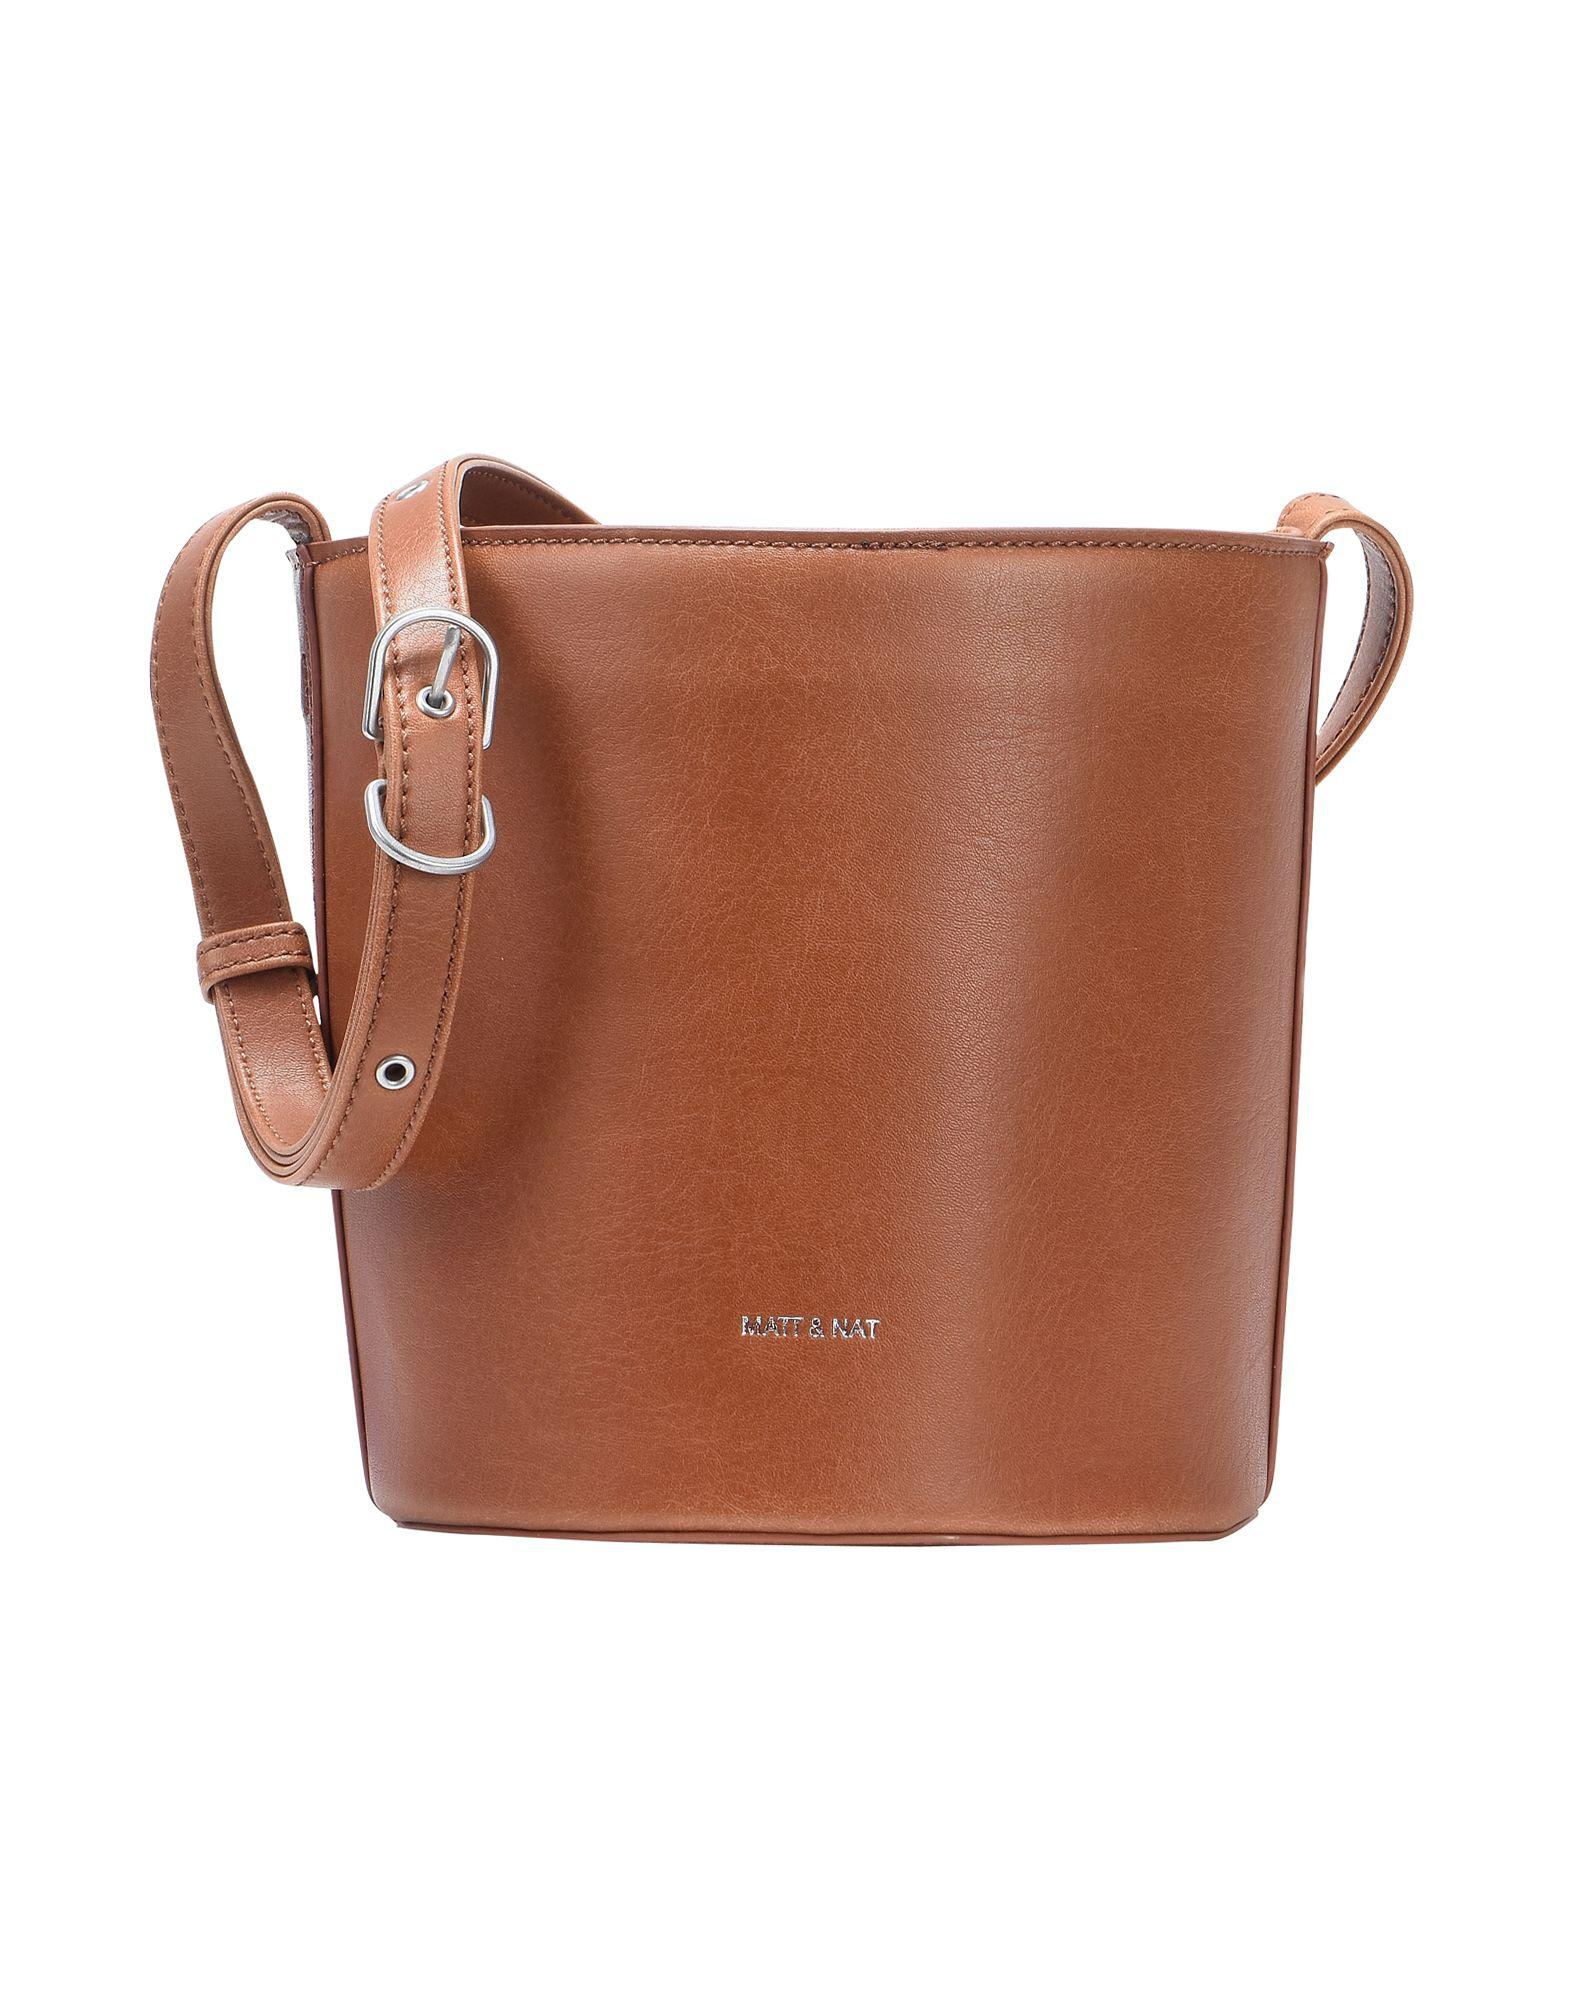 00f59b4f7 Gallery. Previously sold at: YOOX · Women's Cross Body Bags ...